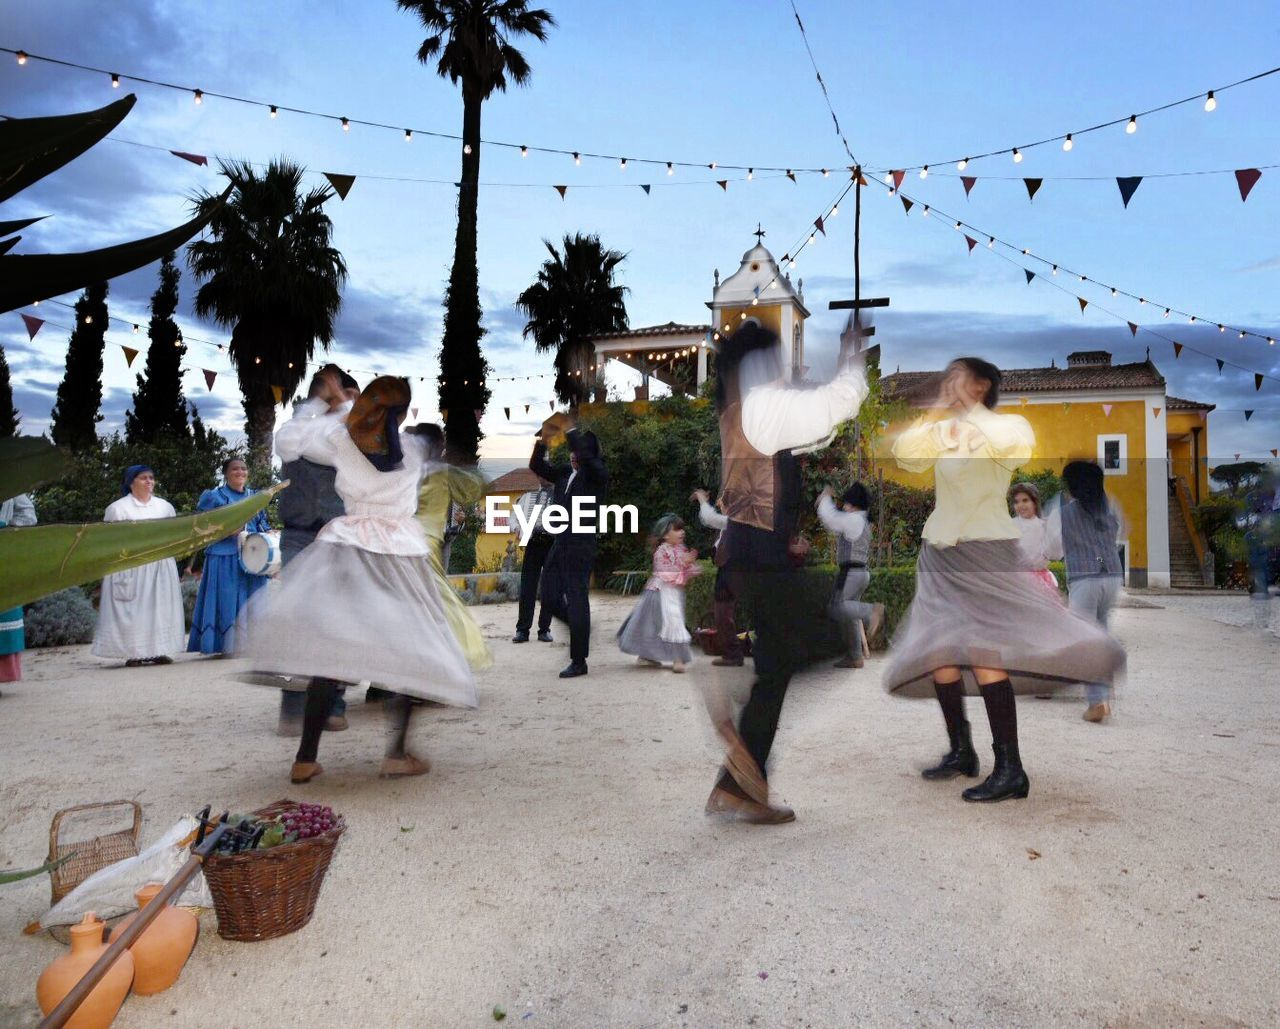 wedding, celebration, bride, women, dancing, walking, bridegroom, enjoyment, fun, men, full length, large group of people, wedding dress, day, outdoors, real people, life events, building exterior, sky, togetherness, architecture, tree, young adult, groom, adult, people, adults only